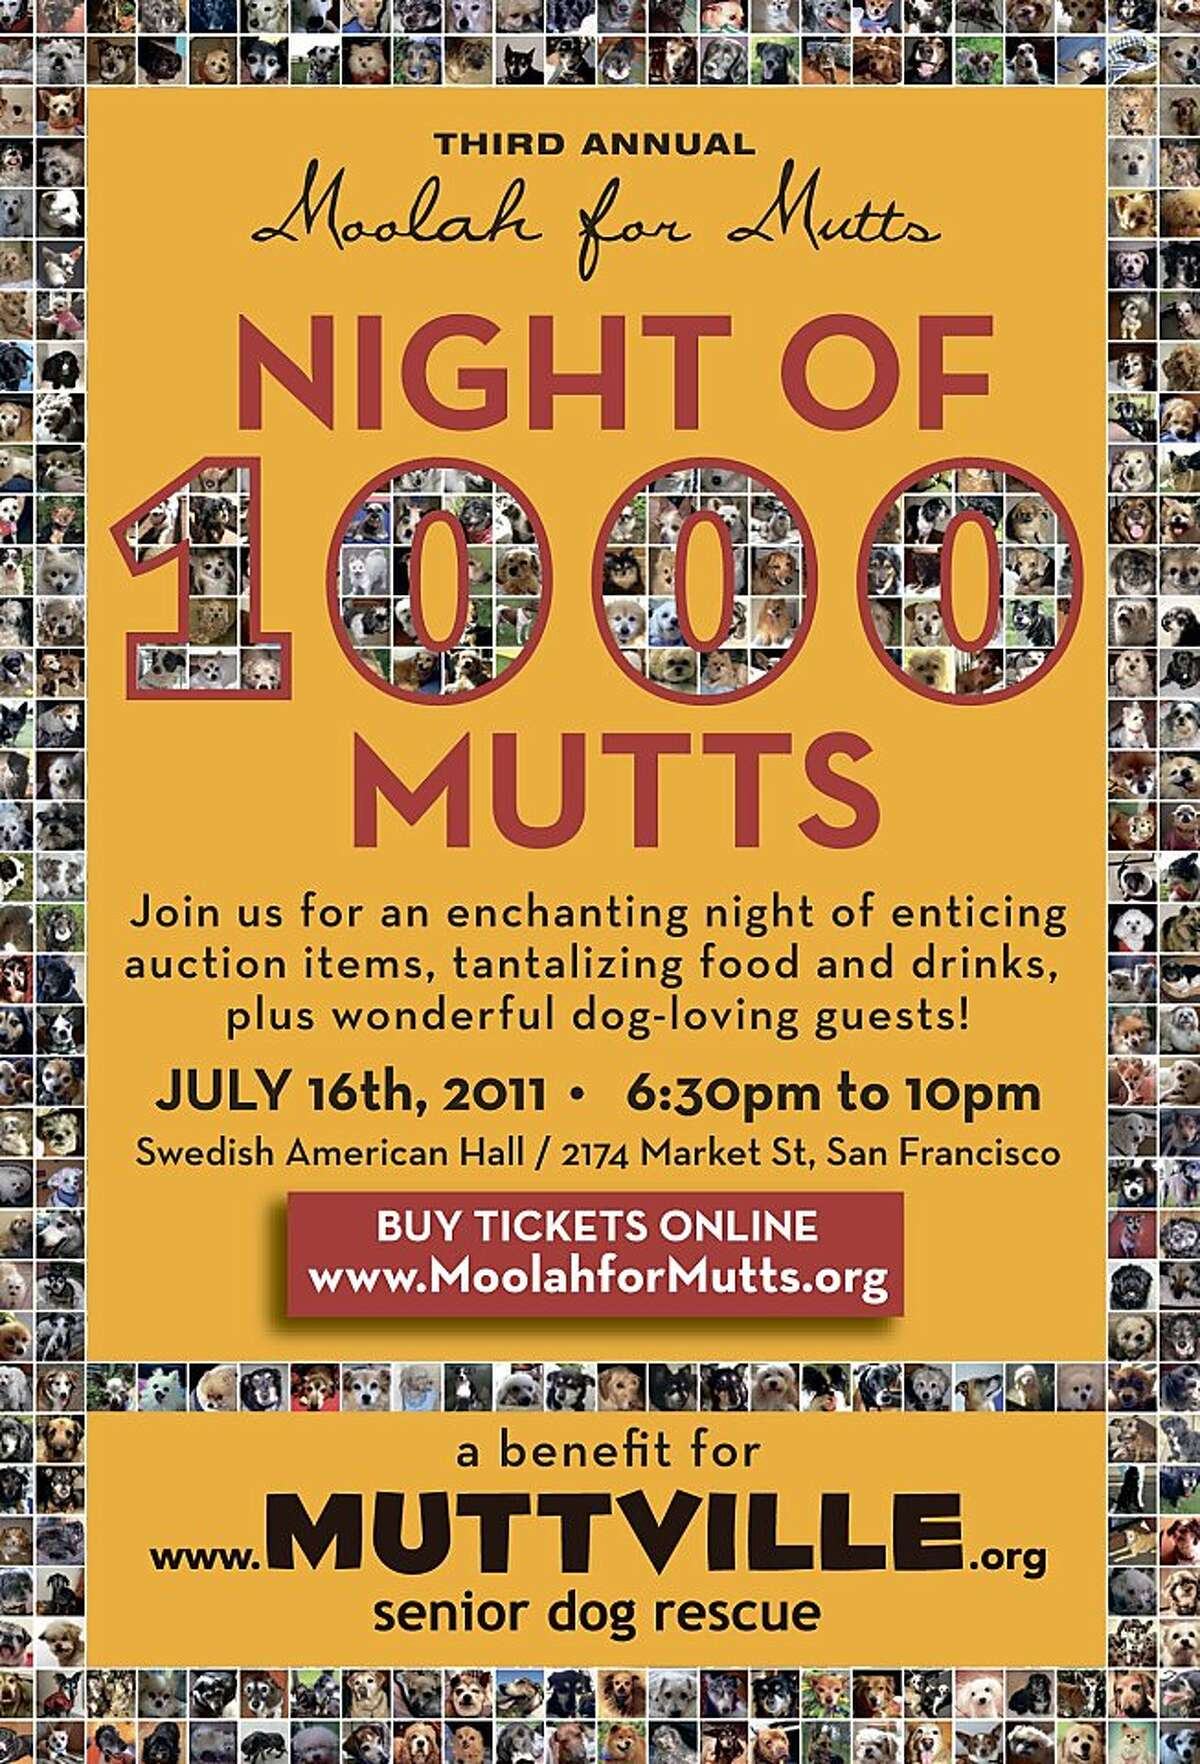 'Third annual 'Moolah for Mutts' on July 16th, 2011. Starting at 6:30 pm - 10 pm at the Swedish American Hall, 2174 Market St., San Francisco A benefit for www.muttville.org